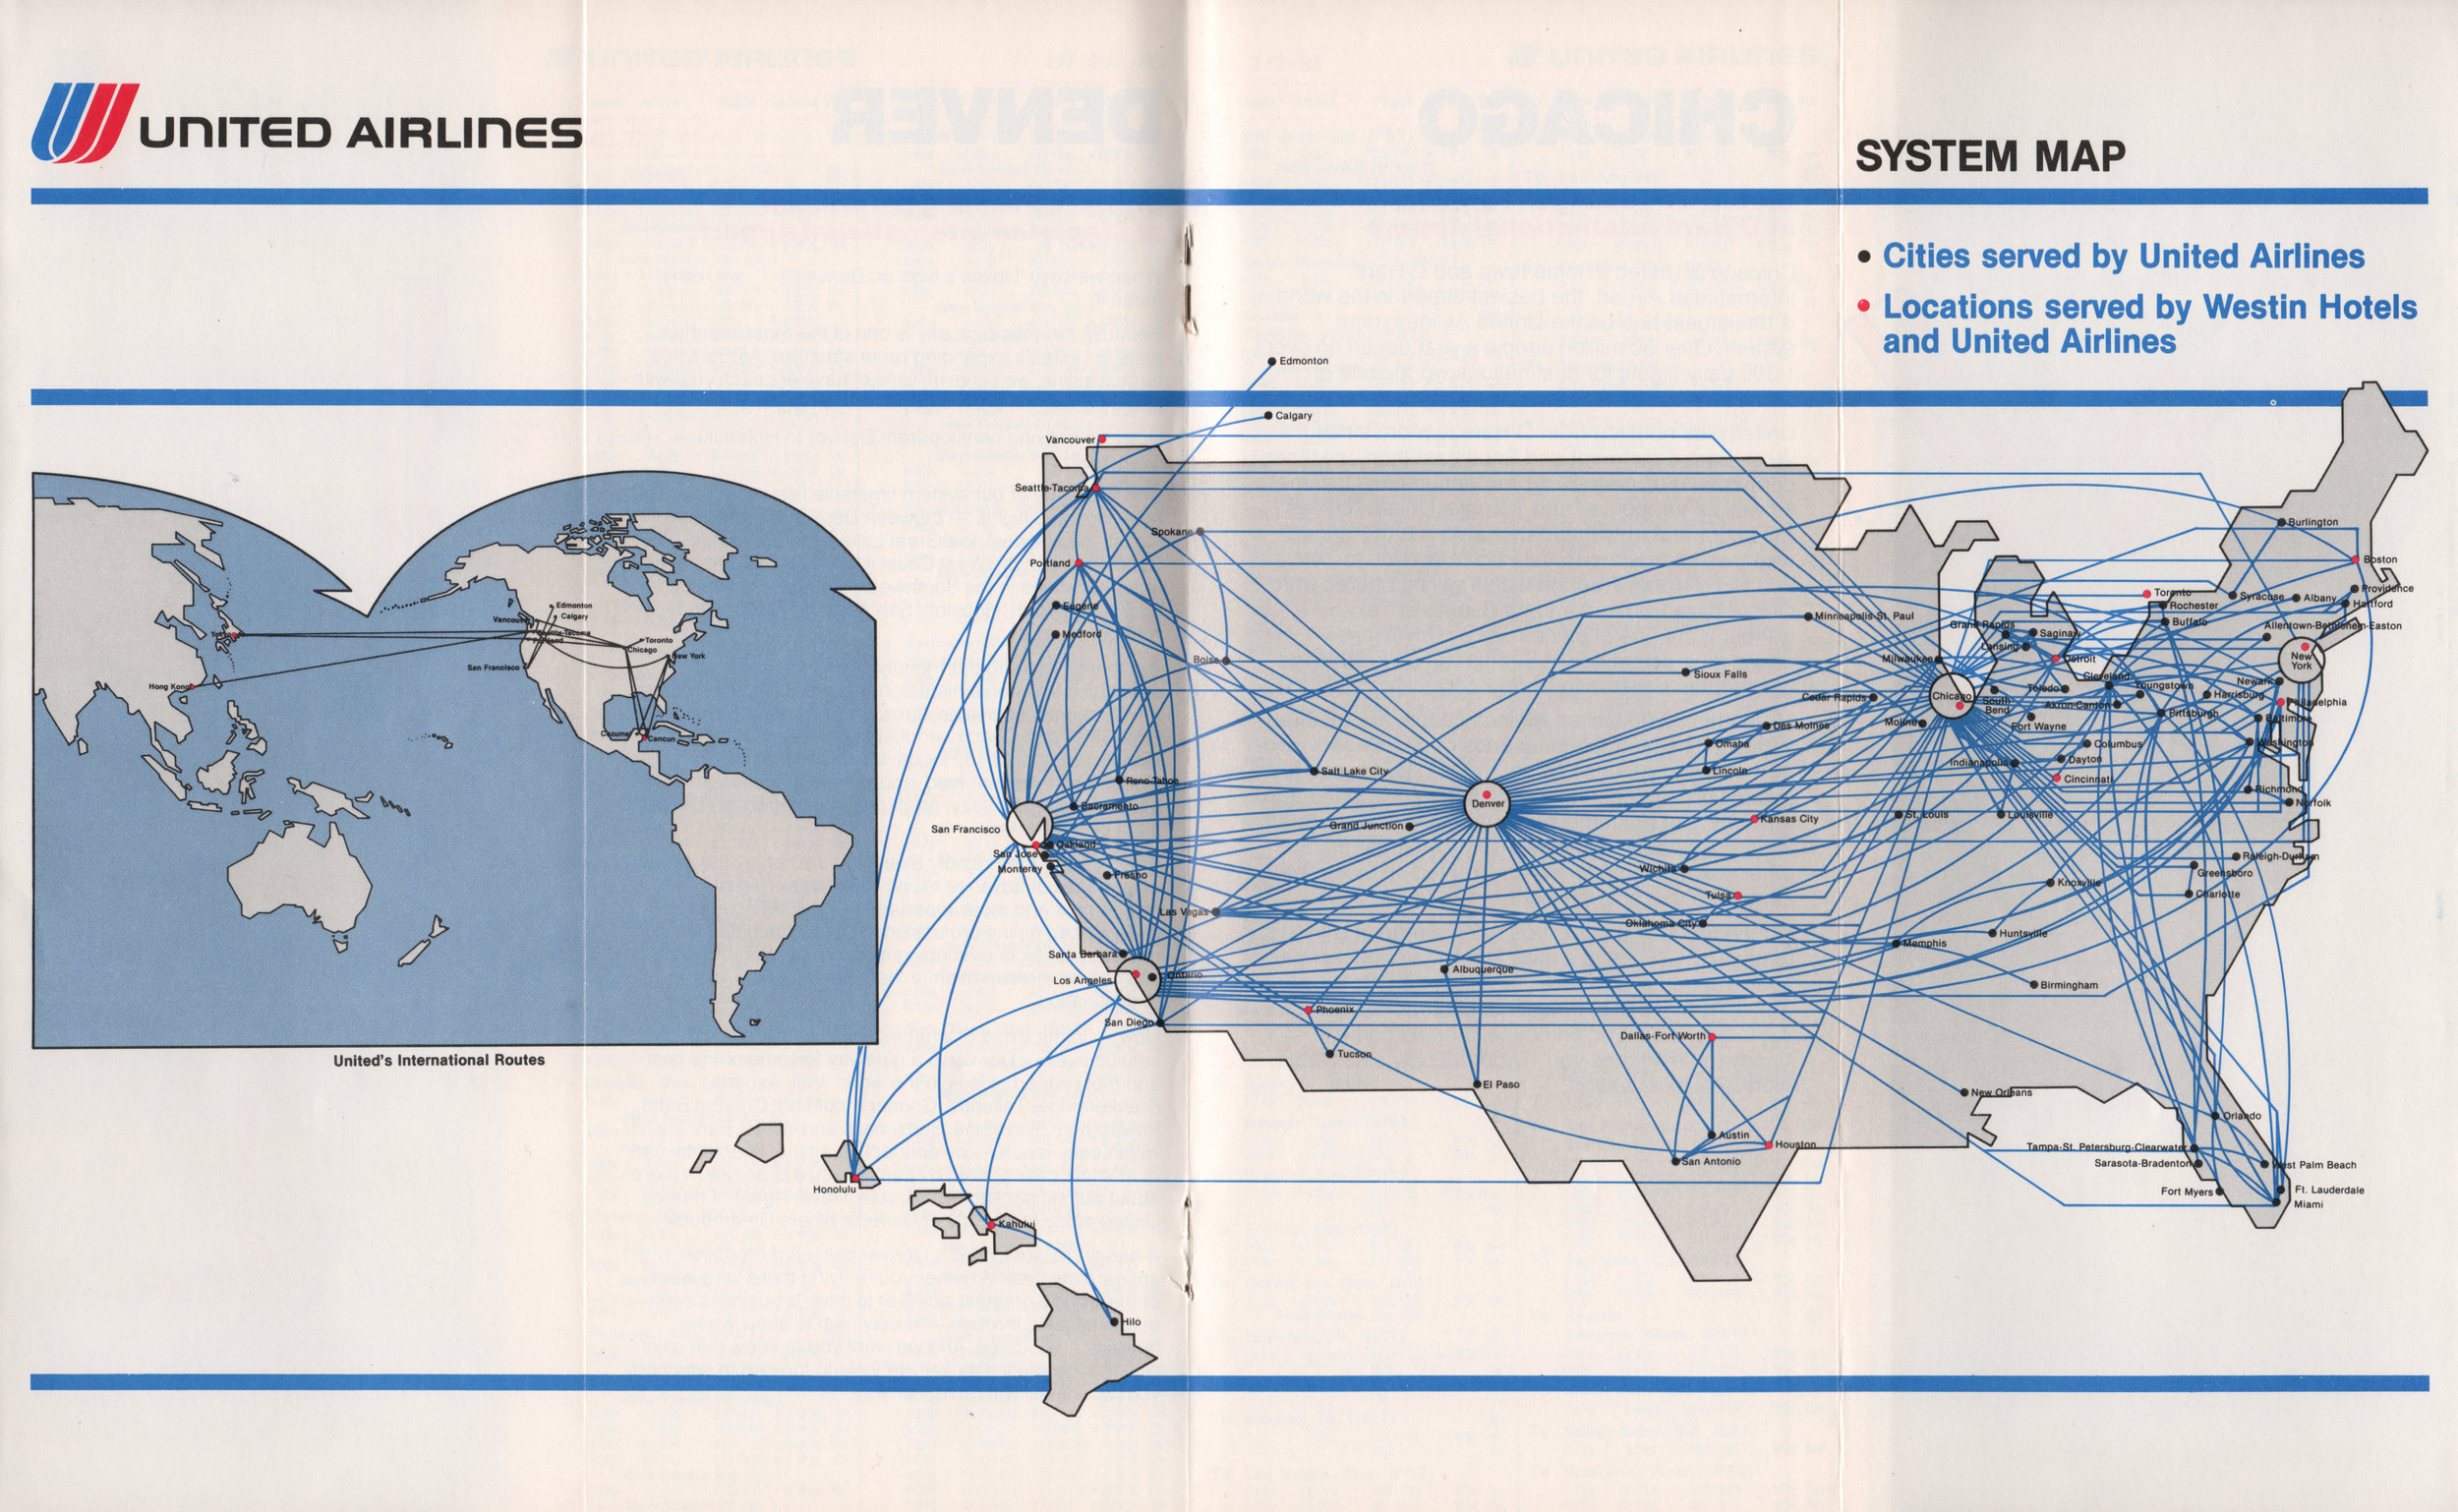 United - acquisition of Pan Am's Pacific Division 1986 ... on united international route map, virgin australia destinations map, united airline airport destinations, destination on a map, continental airlines map, spirit airlines destinations map, northwest destinations map, united flight route map, american airlines destination map, qantas destinations map, copa airlines destinations map, allegiant air destinations map, air new zealand destinations map, hawaiian airlines destinations map, us airways destination map, spirit air seat map, united express airline routes, korean air destinations map, jetblue destinations map, delta destinations map,